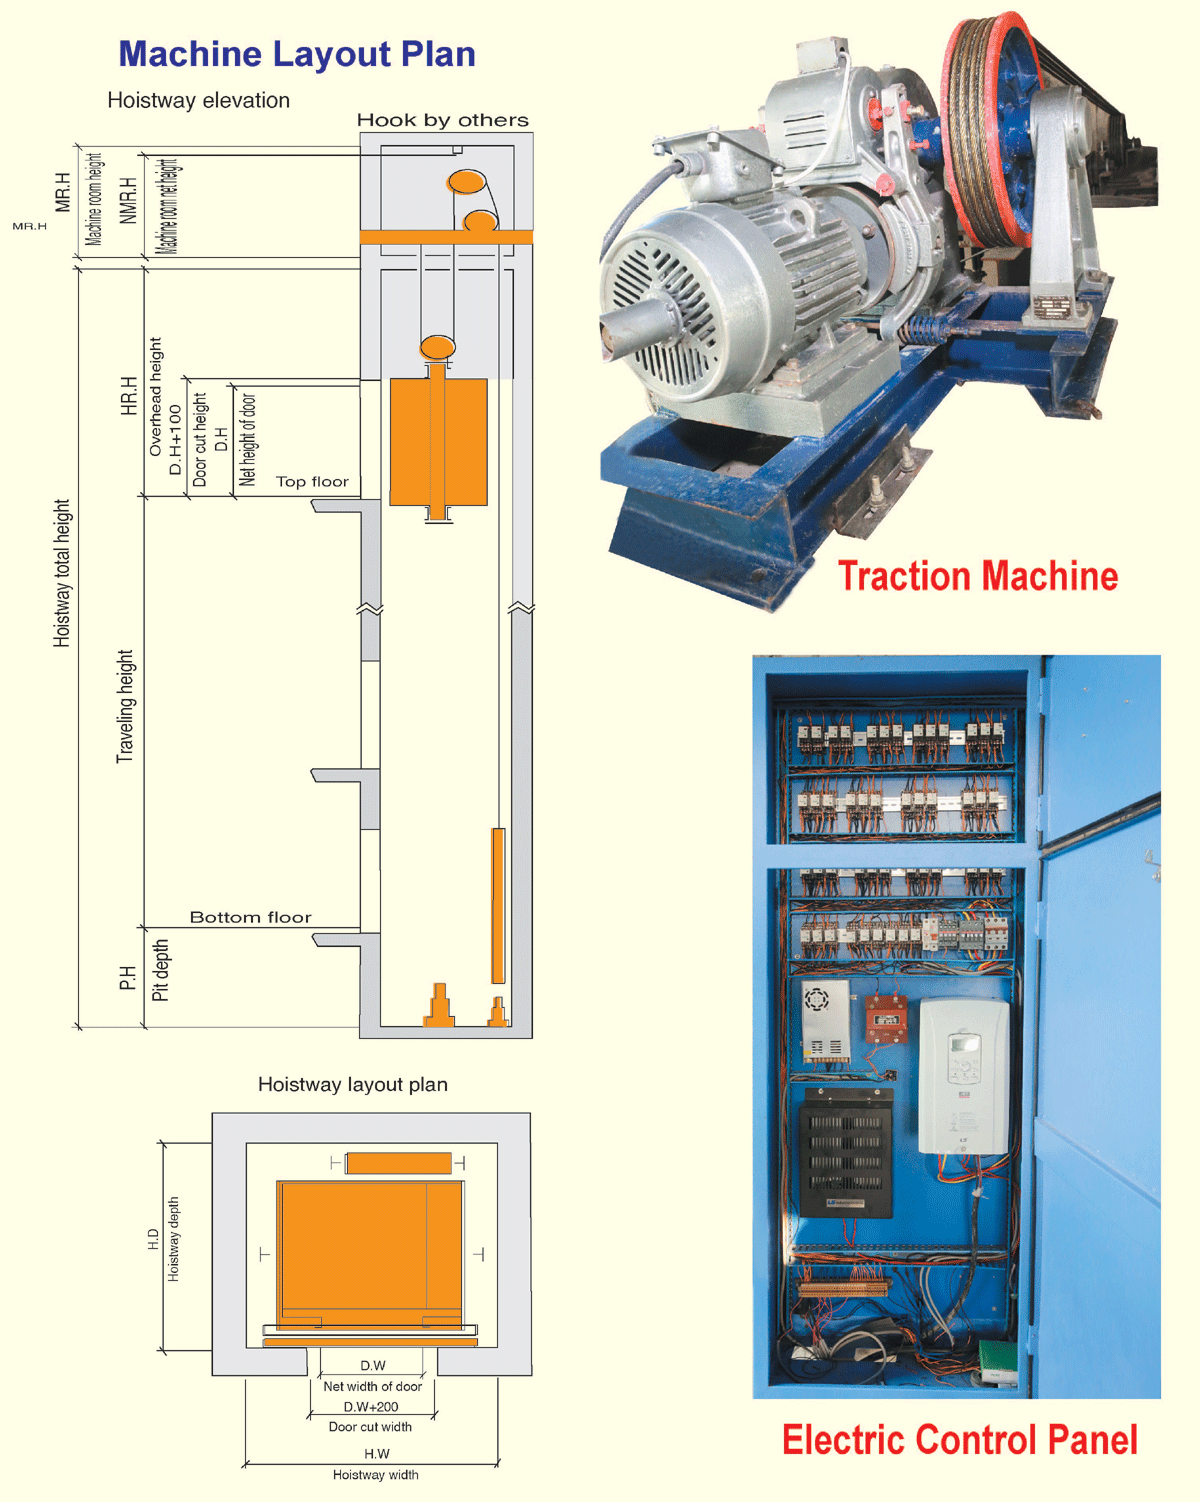 Traction Machine/Electric Control Panel